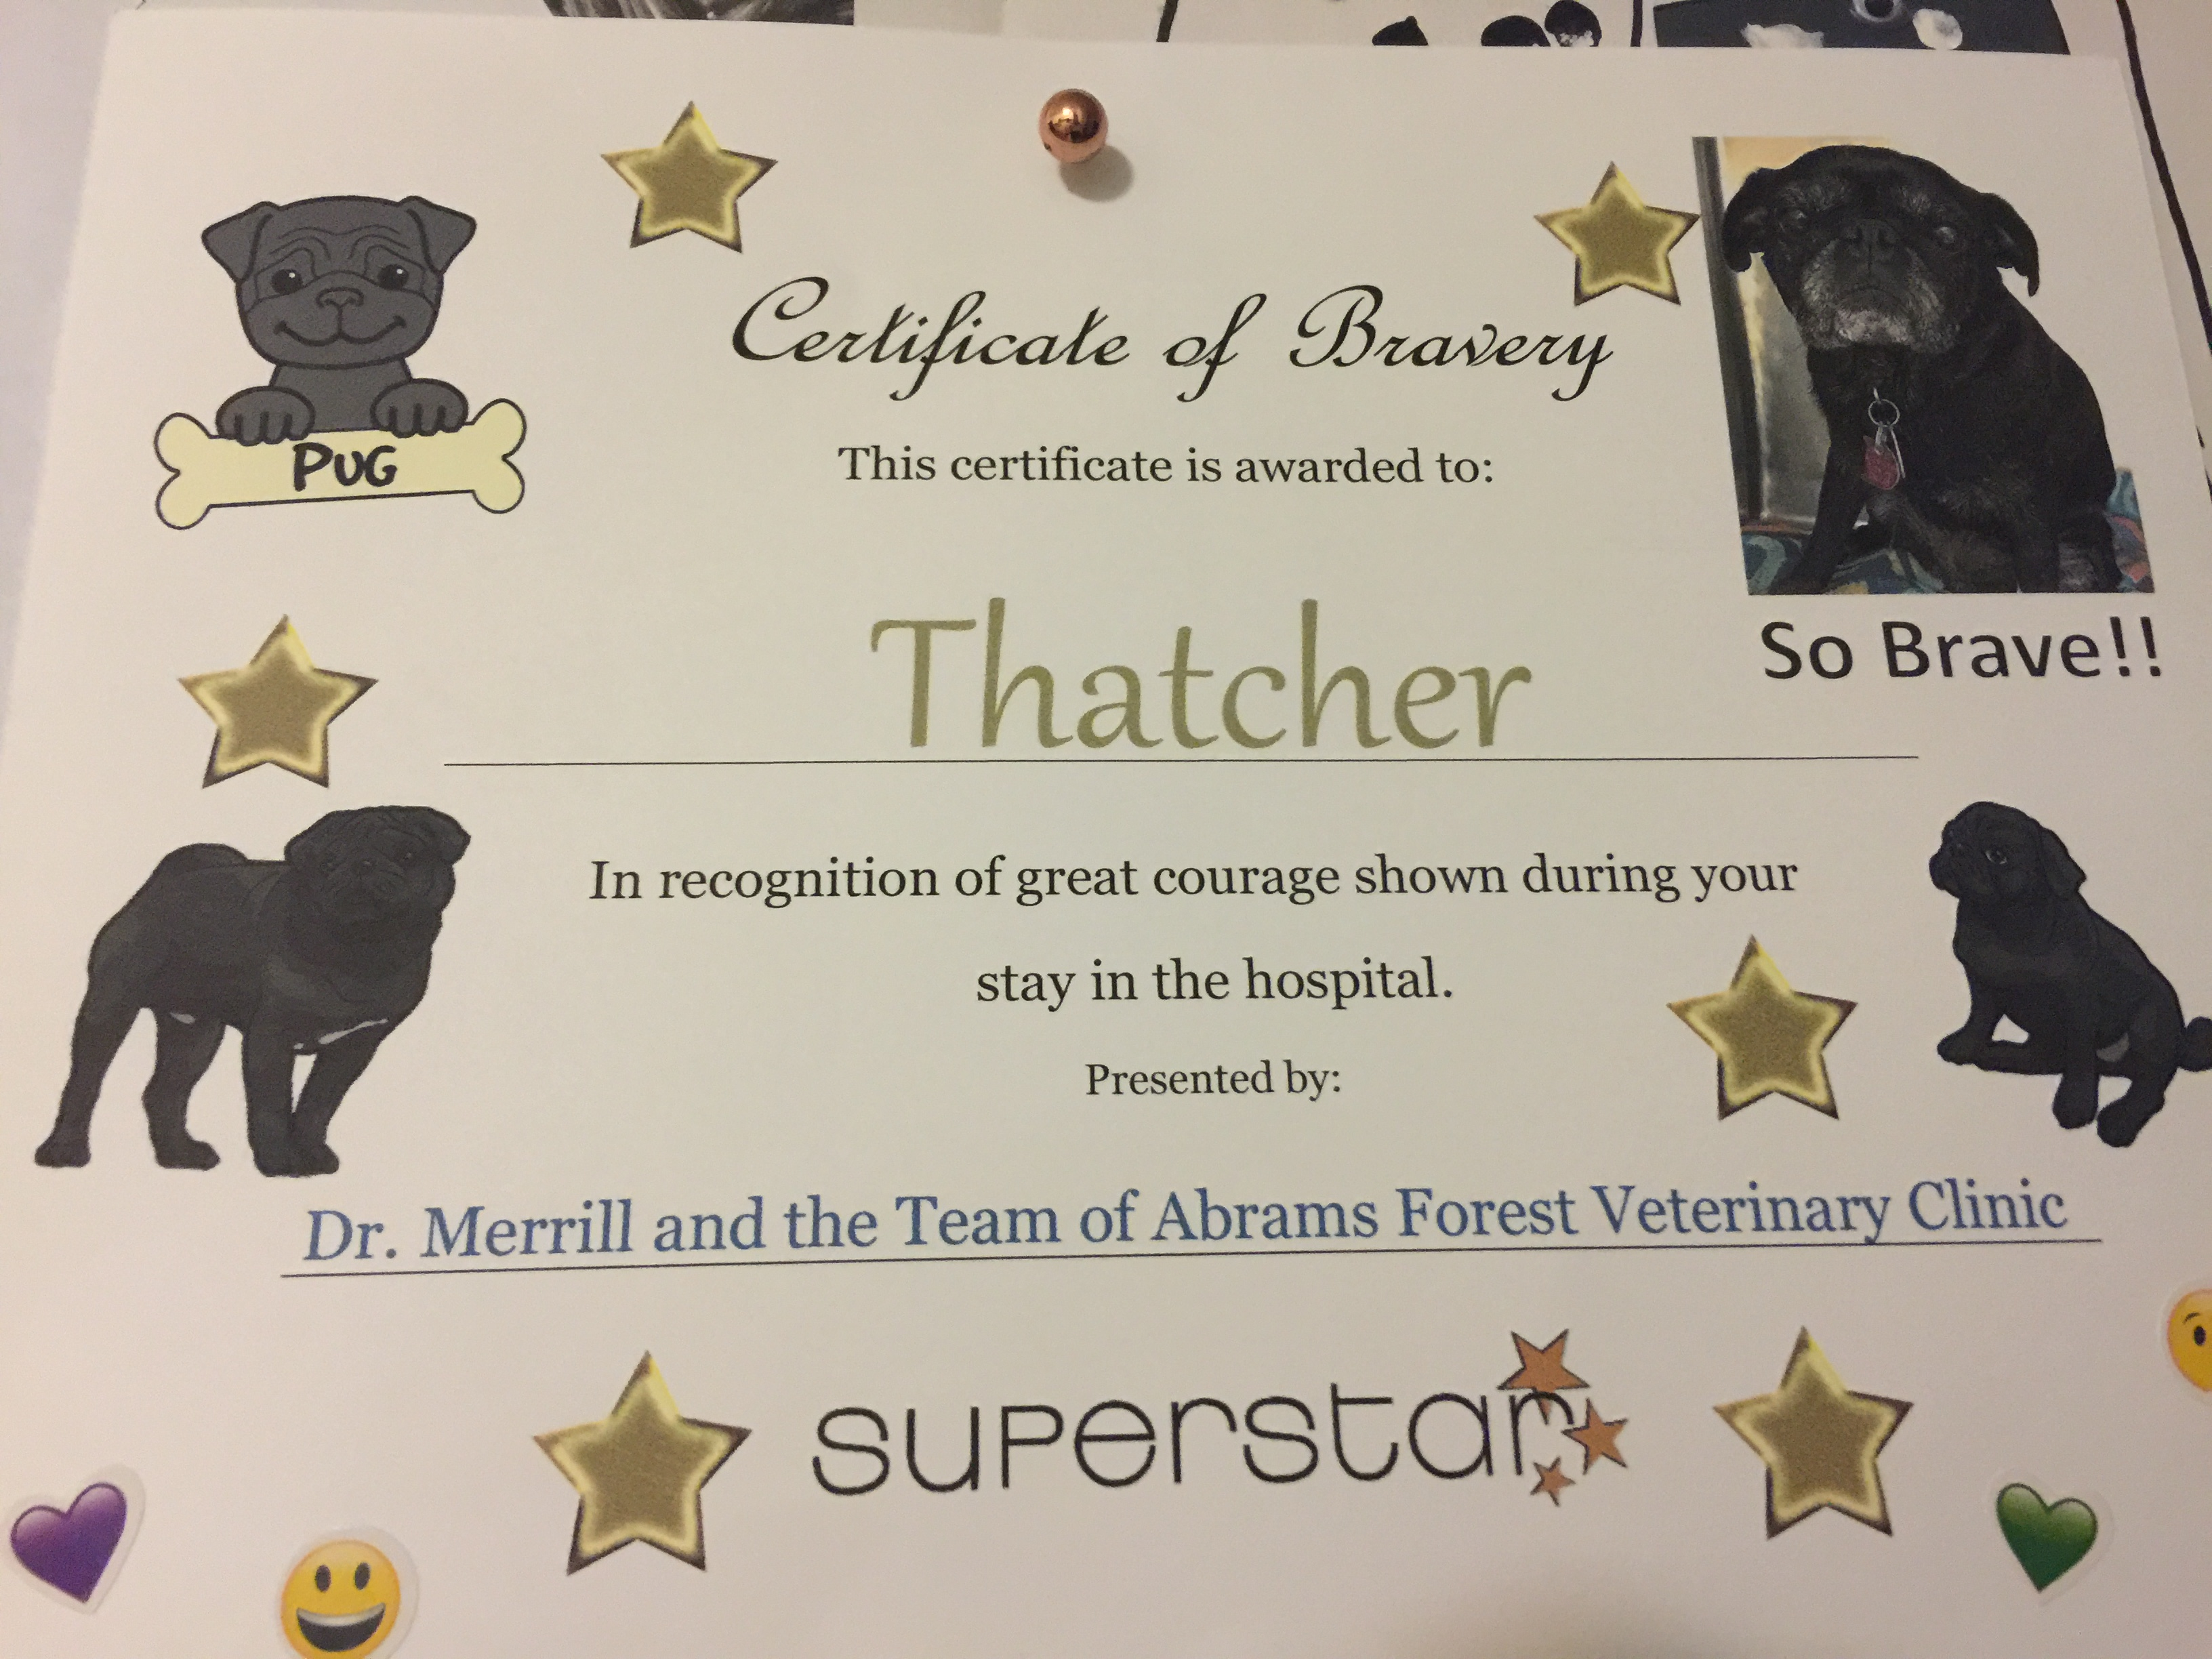 b5a7f7dcd8b9 This next statement should be obvious but Thatcher is dog and therefore she  is illiterate. She also probably can t grasp the concept of bravery.